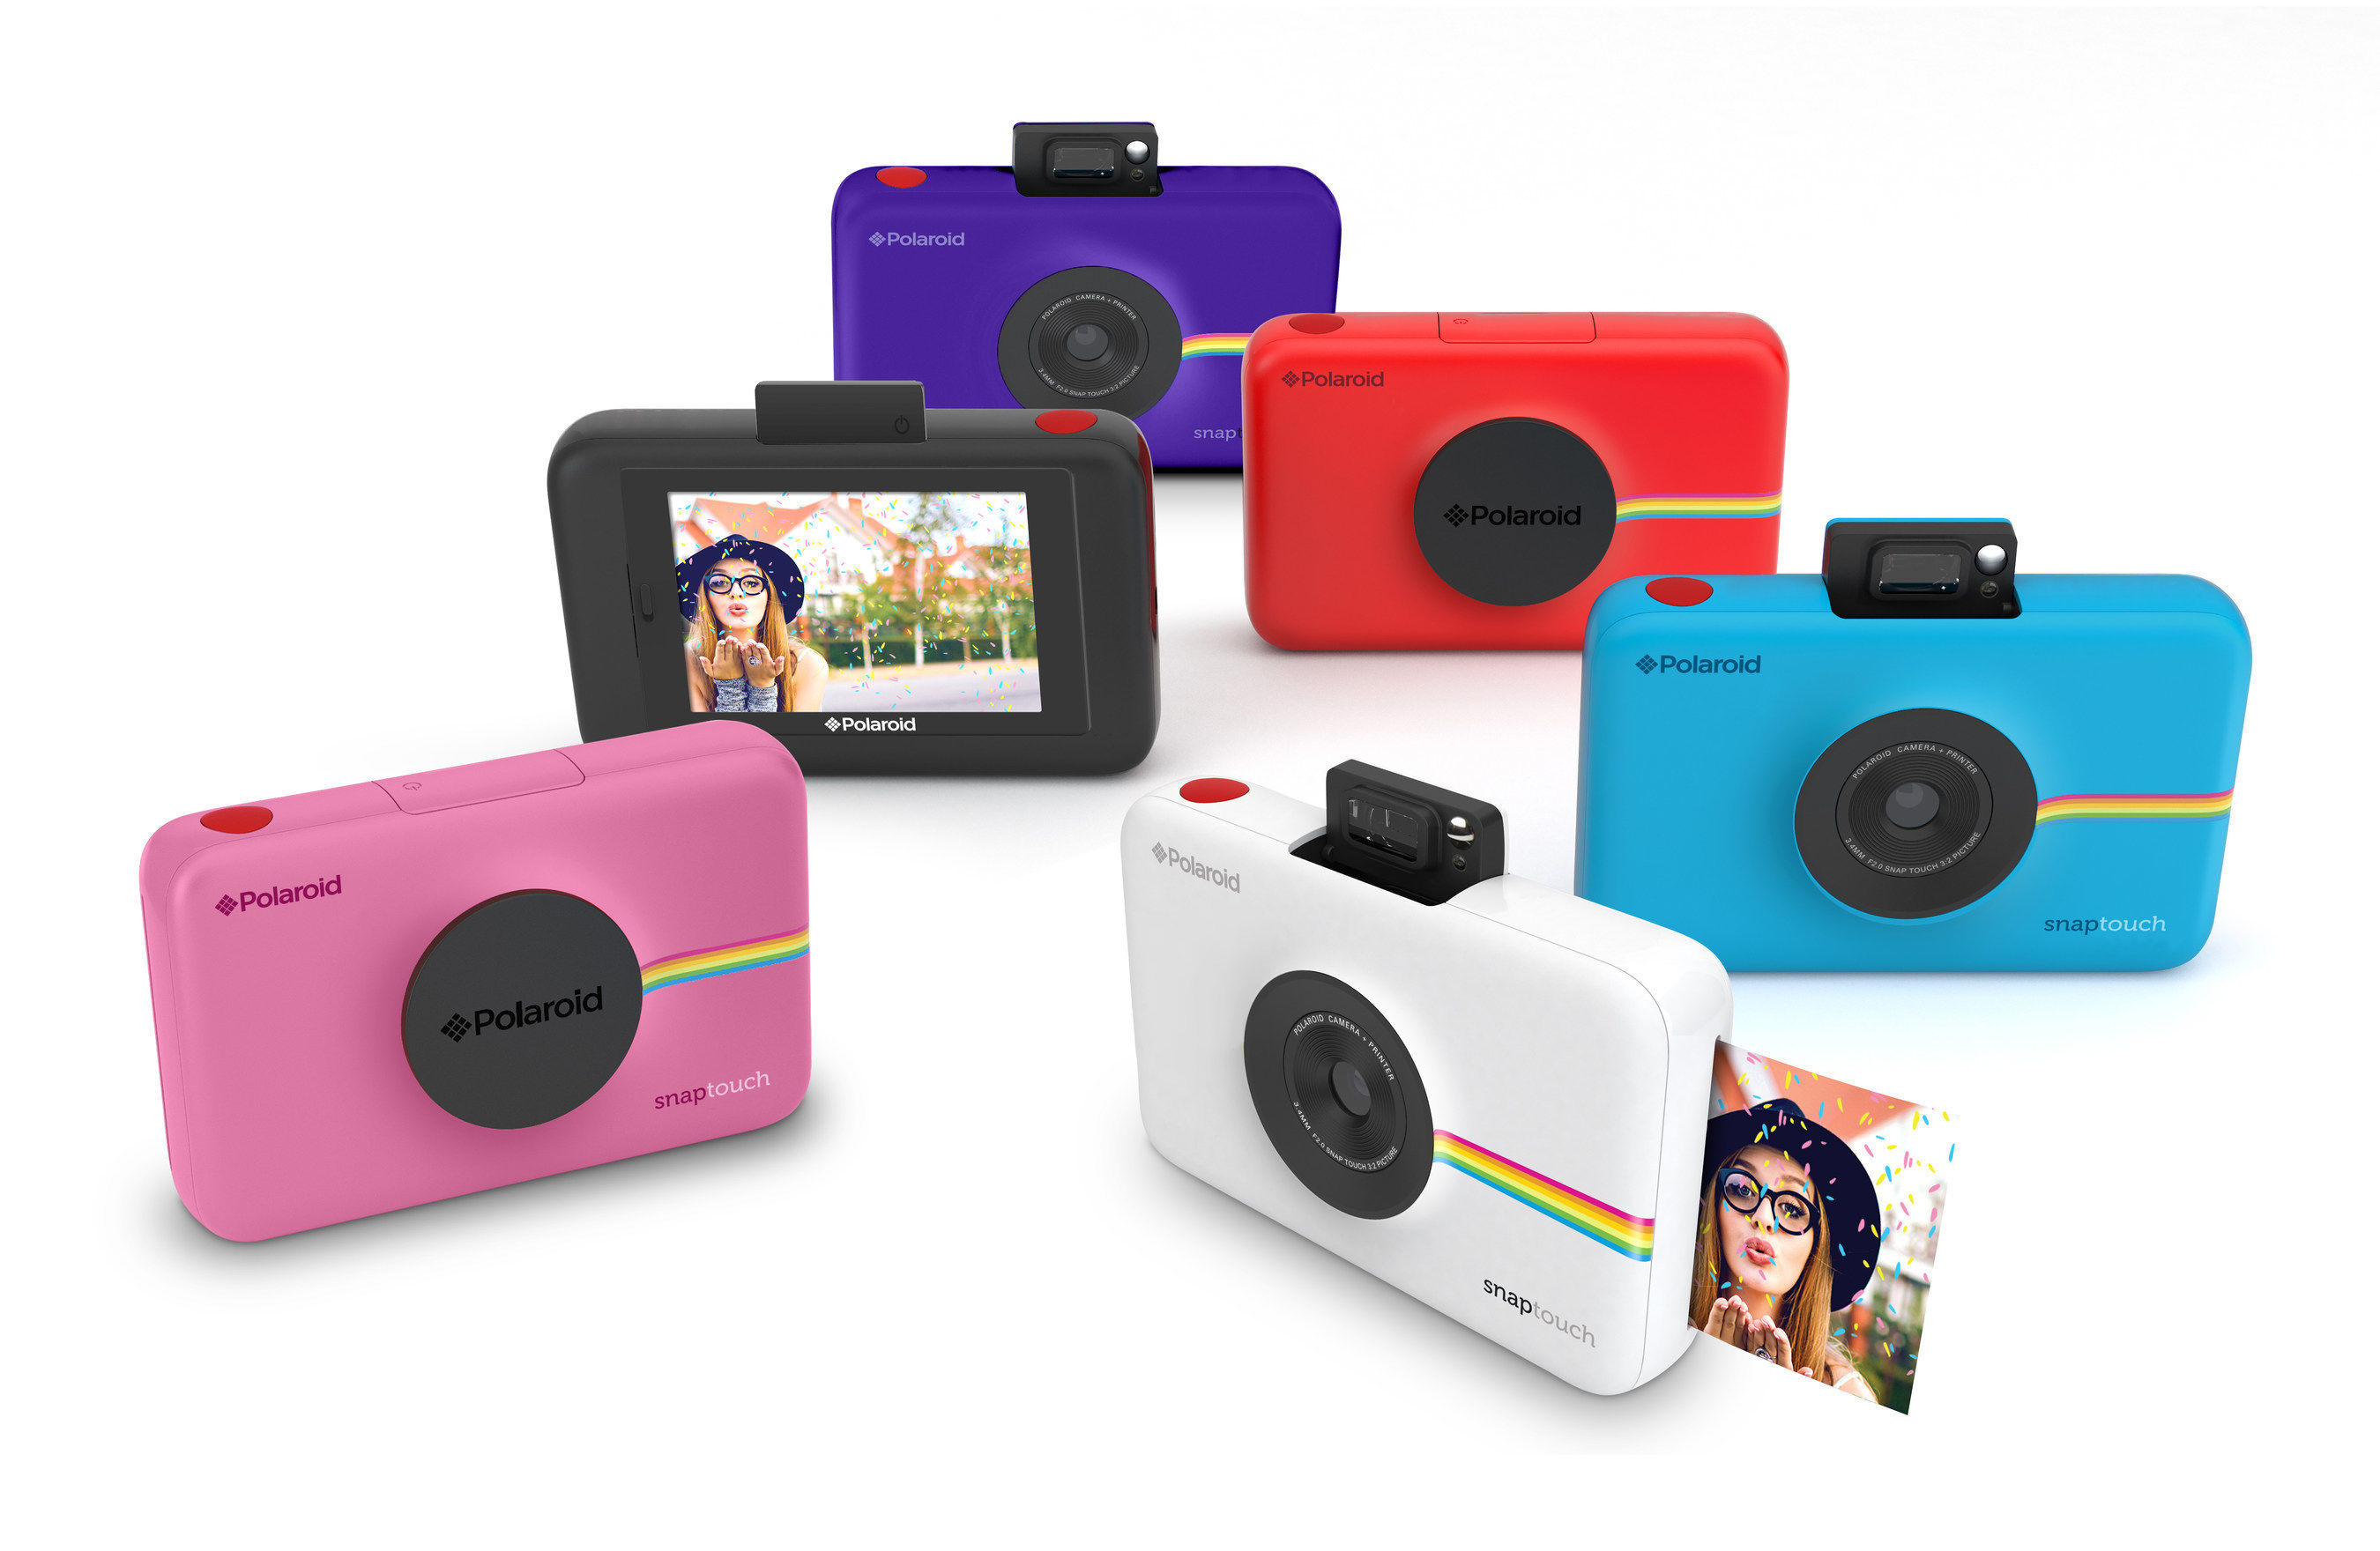 The Polaroid Snap Touch instant digital camera is now available for pre-order.